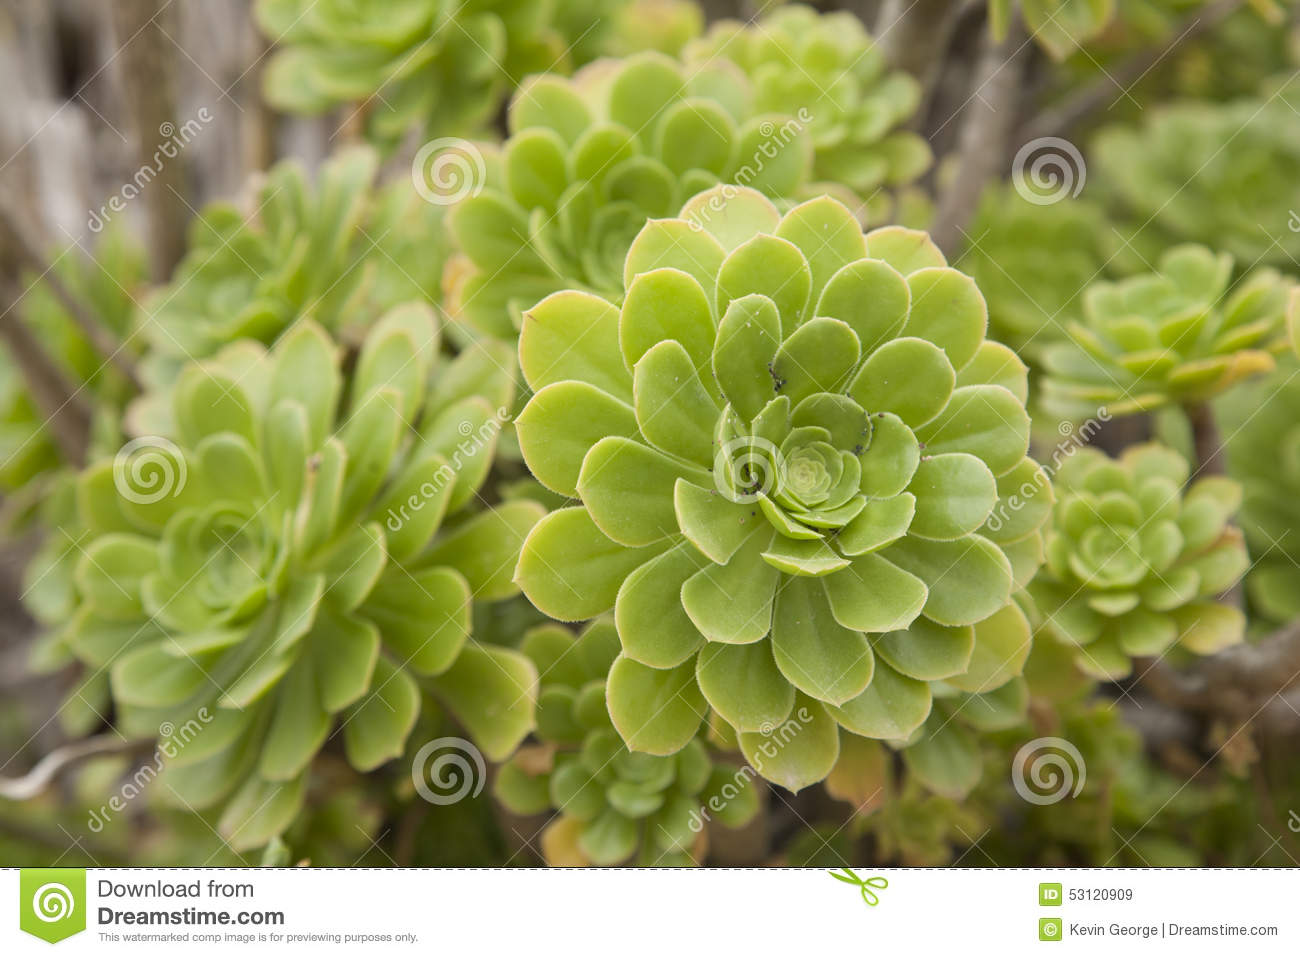 Download Green Cactus Flower stock image. Image of nature, plant - 53120909